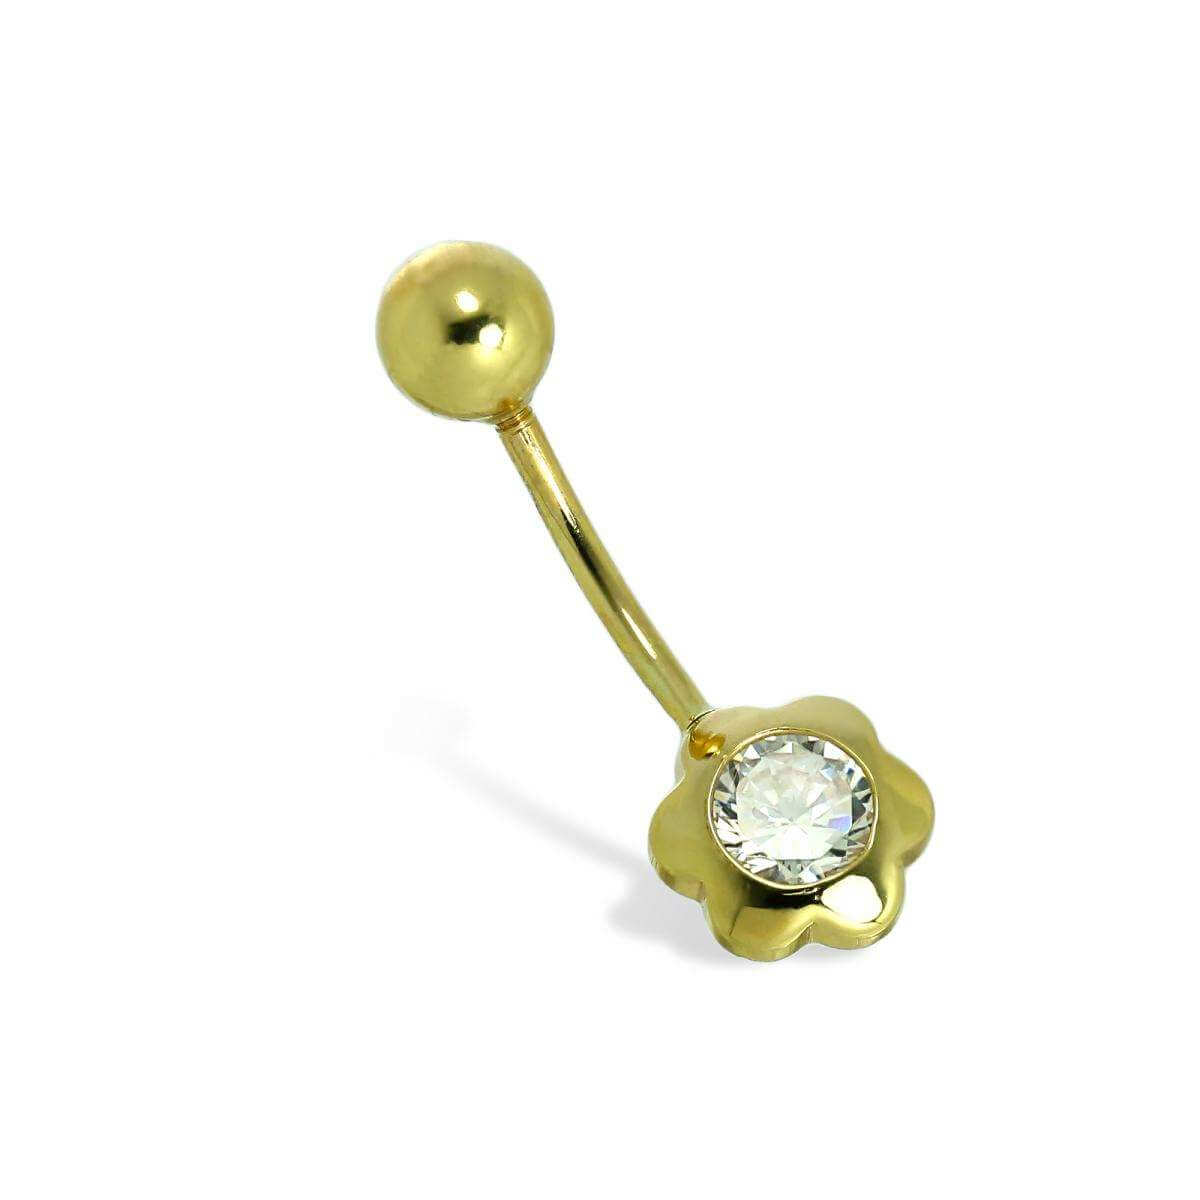 9ct Gold & 4mm Clear CZ Crystal Flower Ball End Belly Bar Piercing